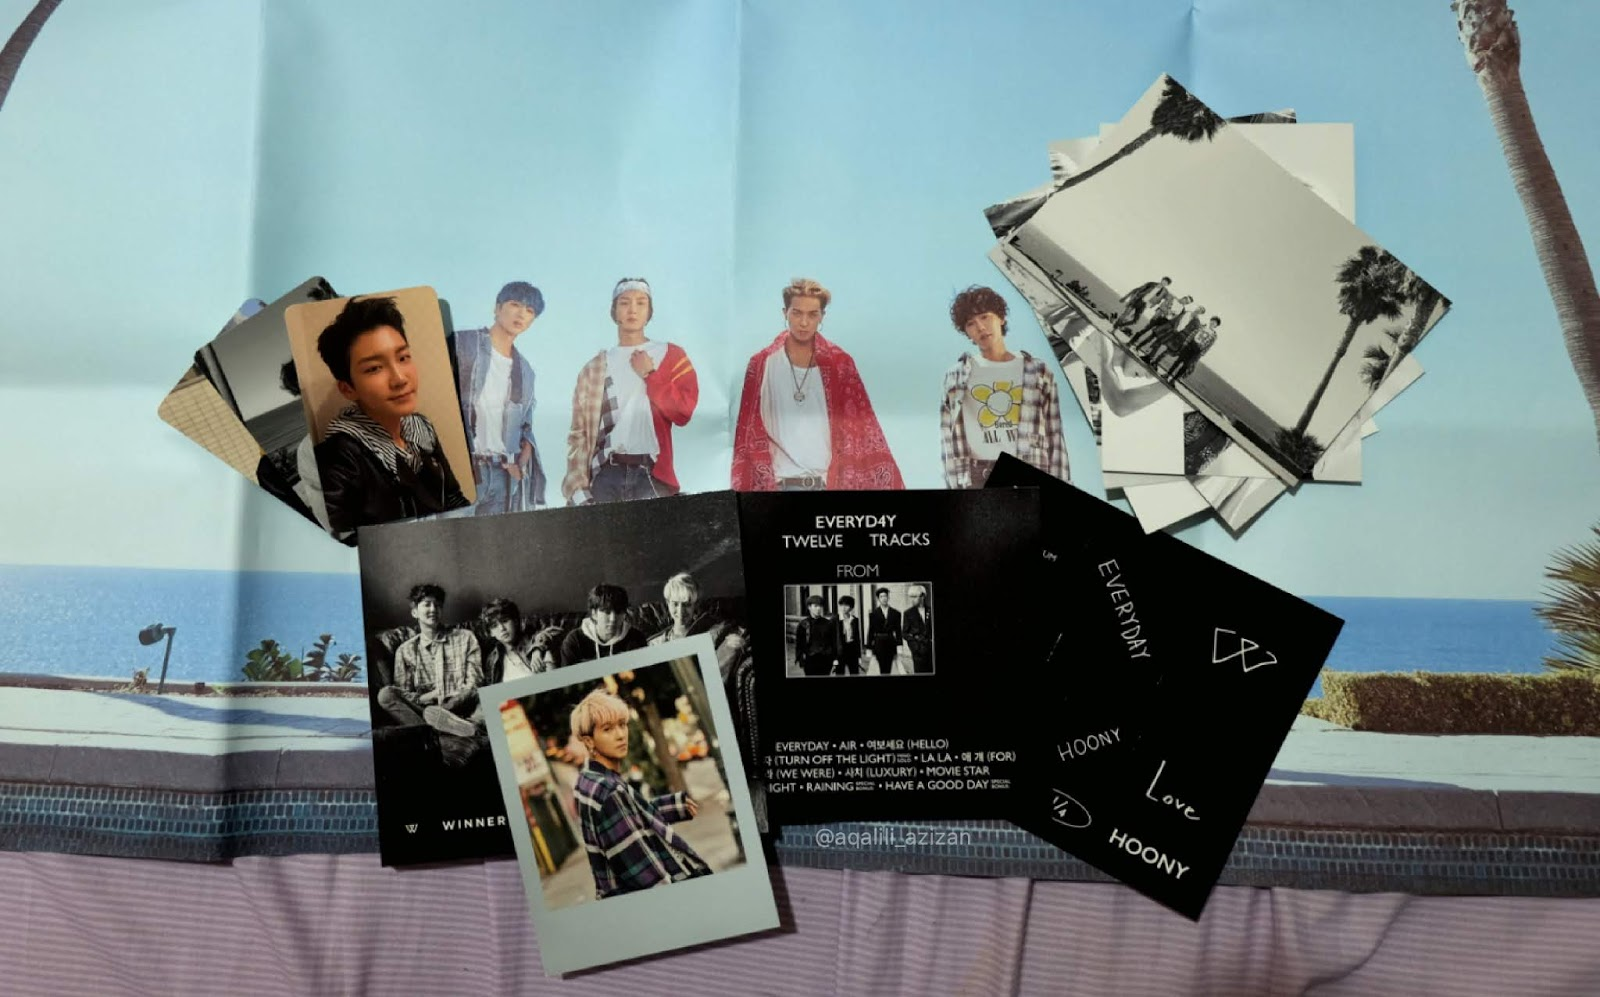 Where I Buy My Kpop Album in Malaysia? | Curitan Aqalili - Malaysian